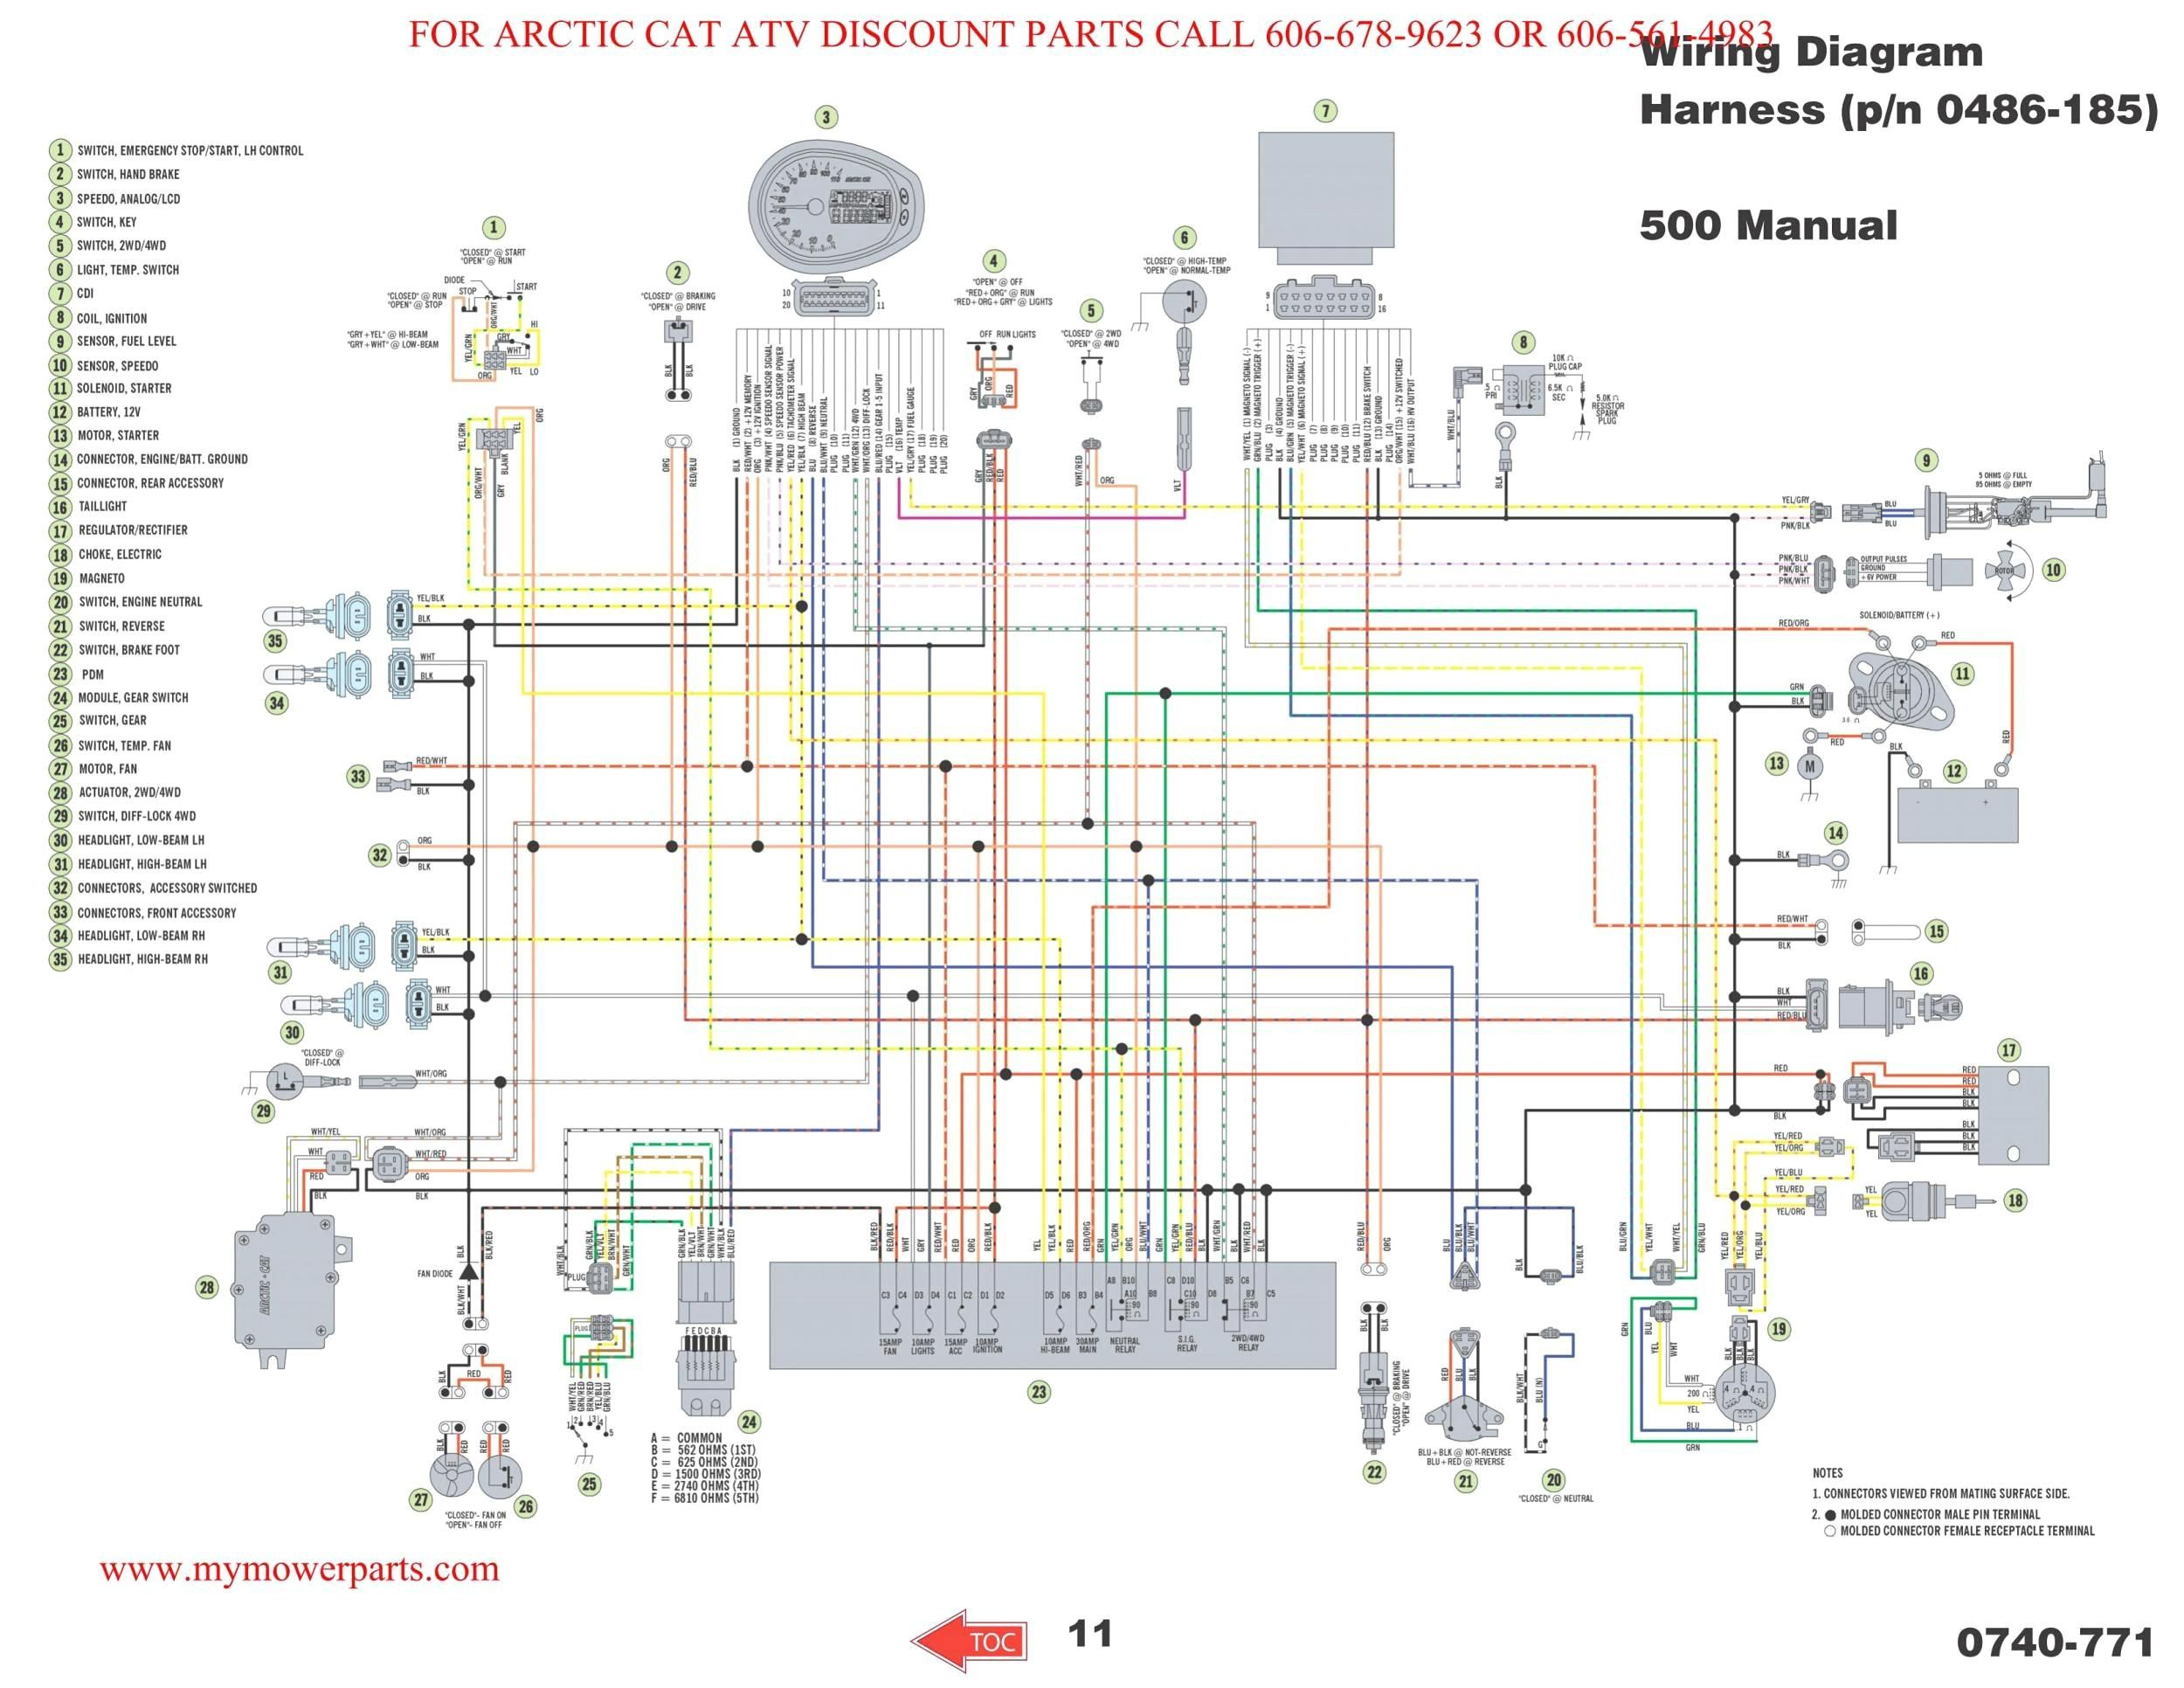 polaris predator 500 wiring diagram for stuff diagram 2004 Polaris Predator 500 Wiring Diagram 2005 polaris sportsman 500 wiring